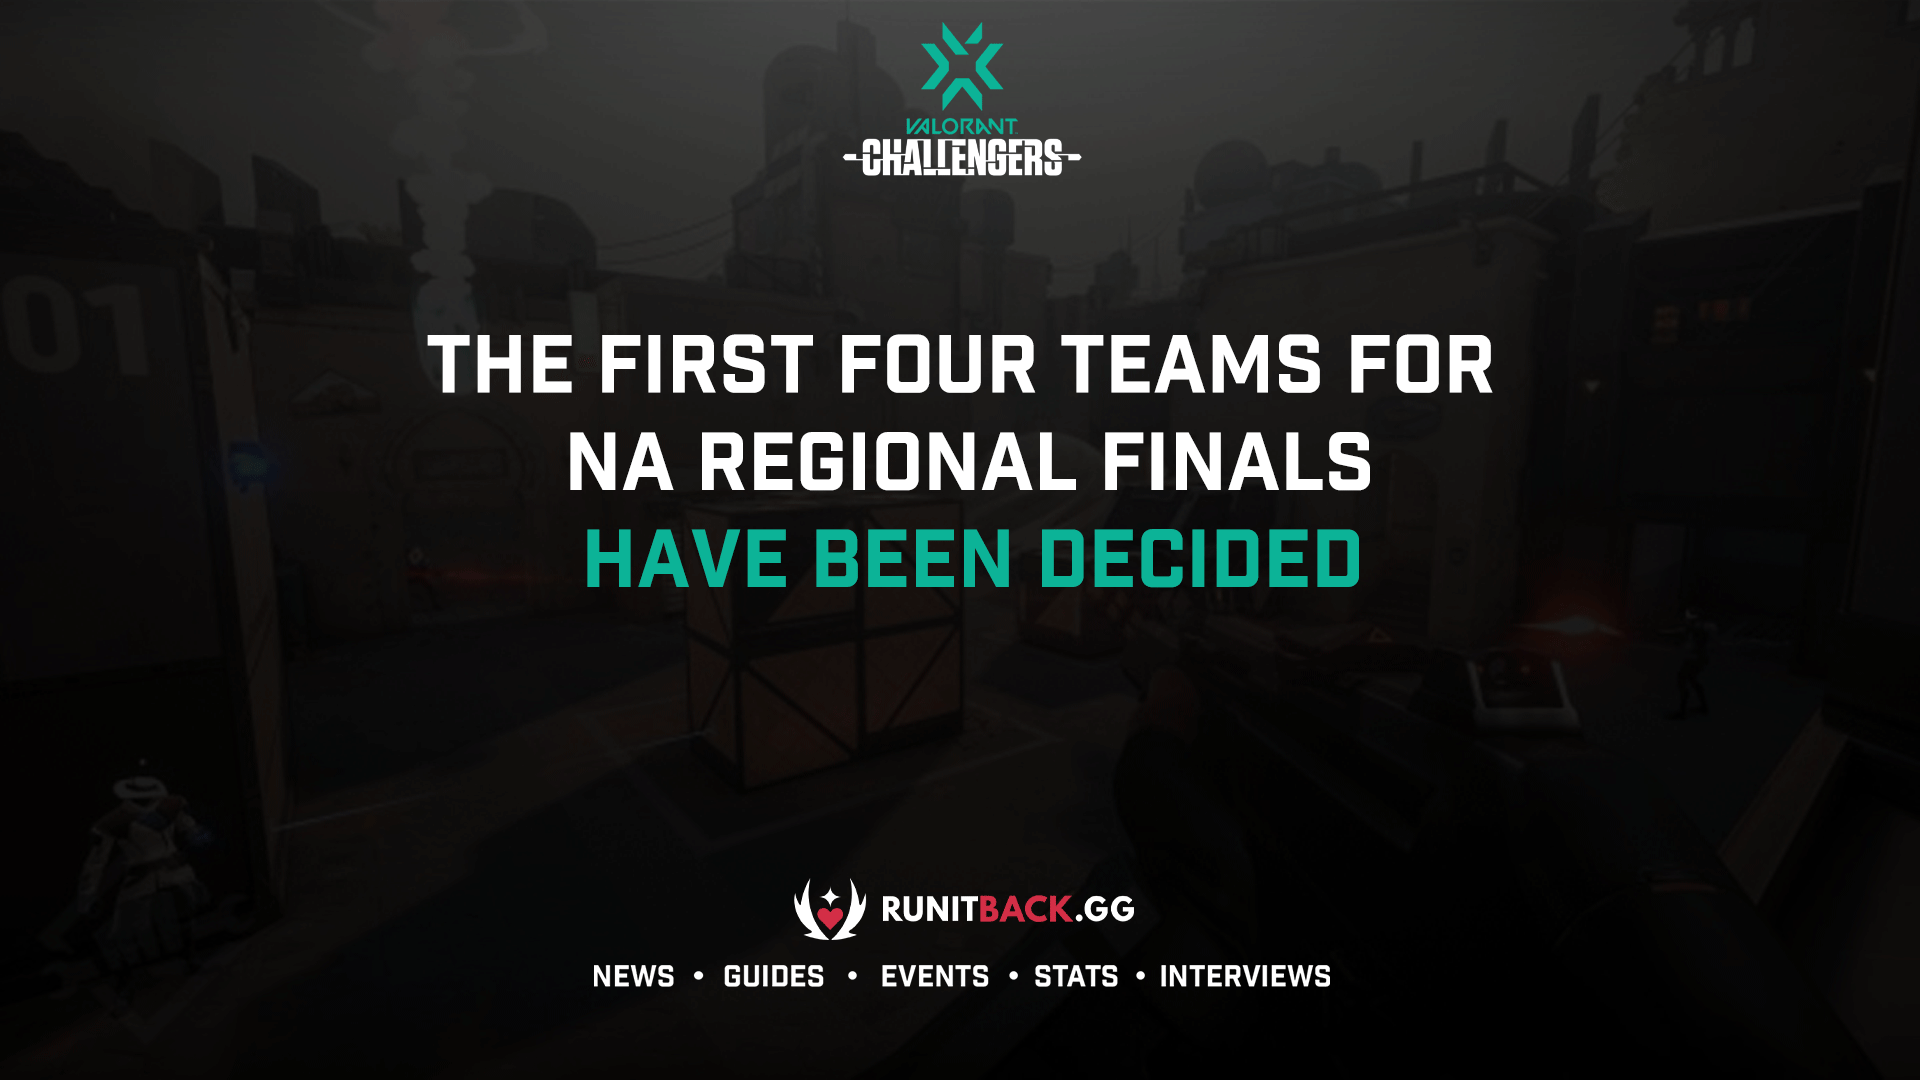 The first four teams for NA Regional Finals have been decided